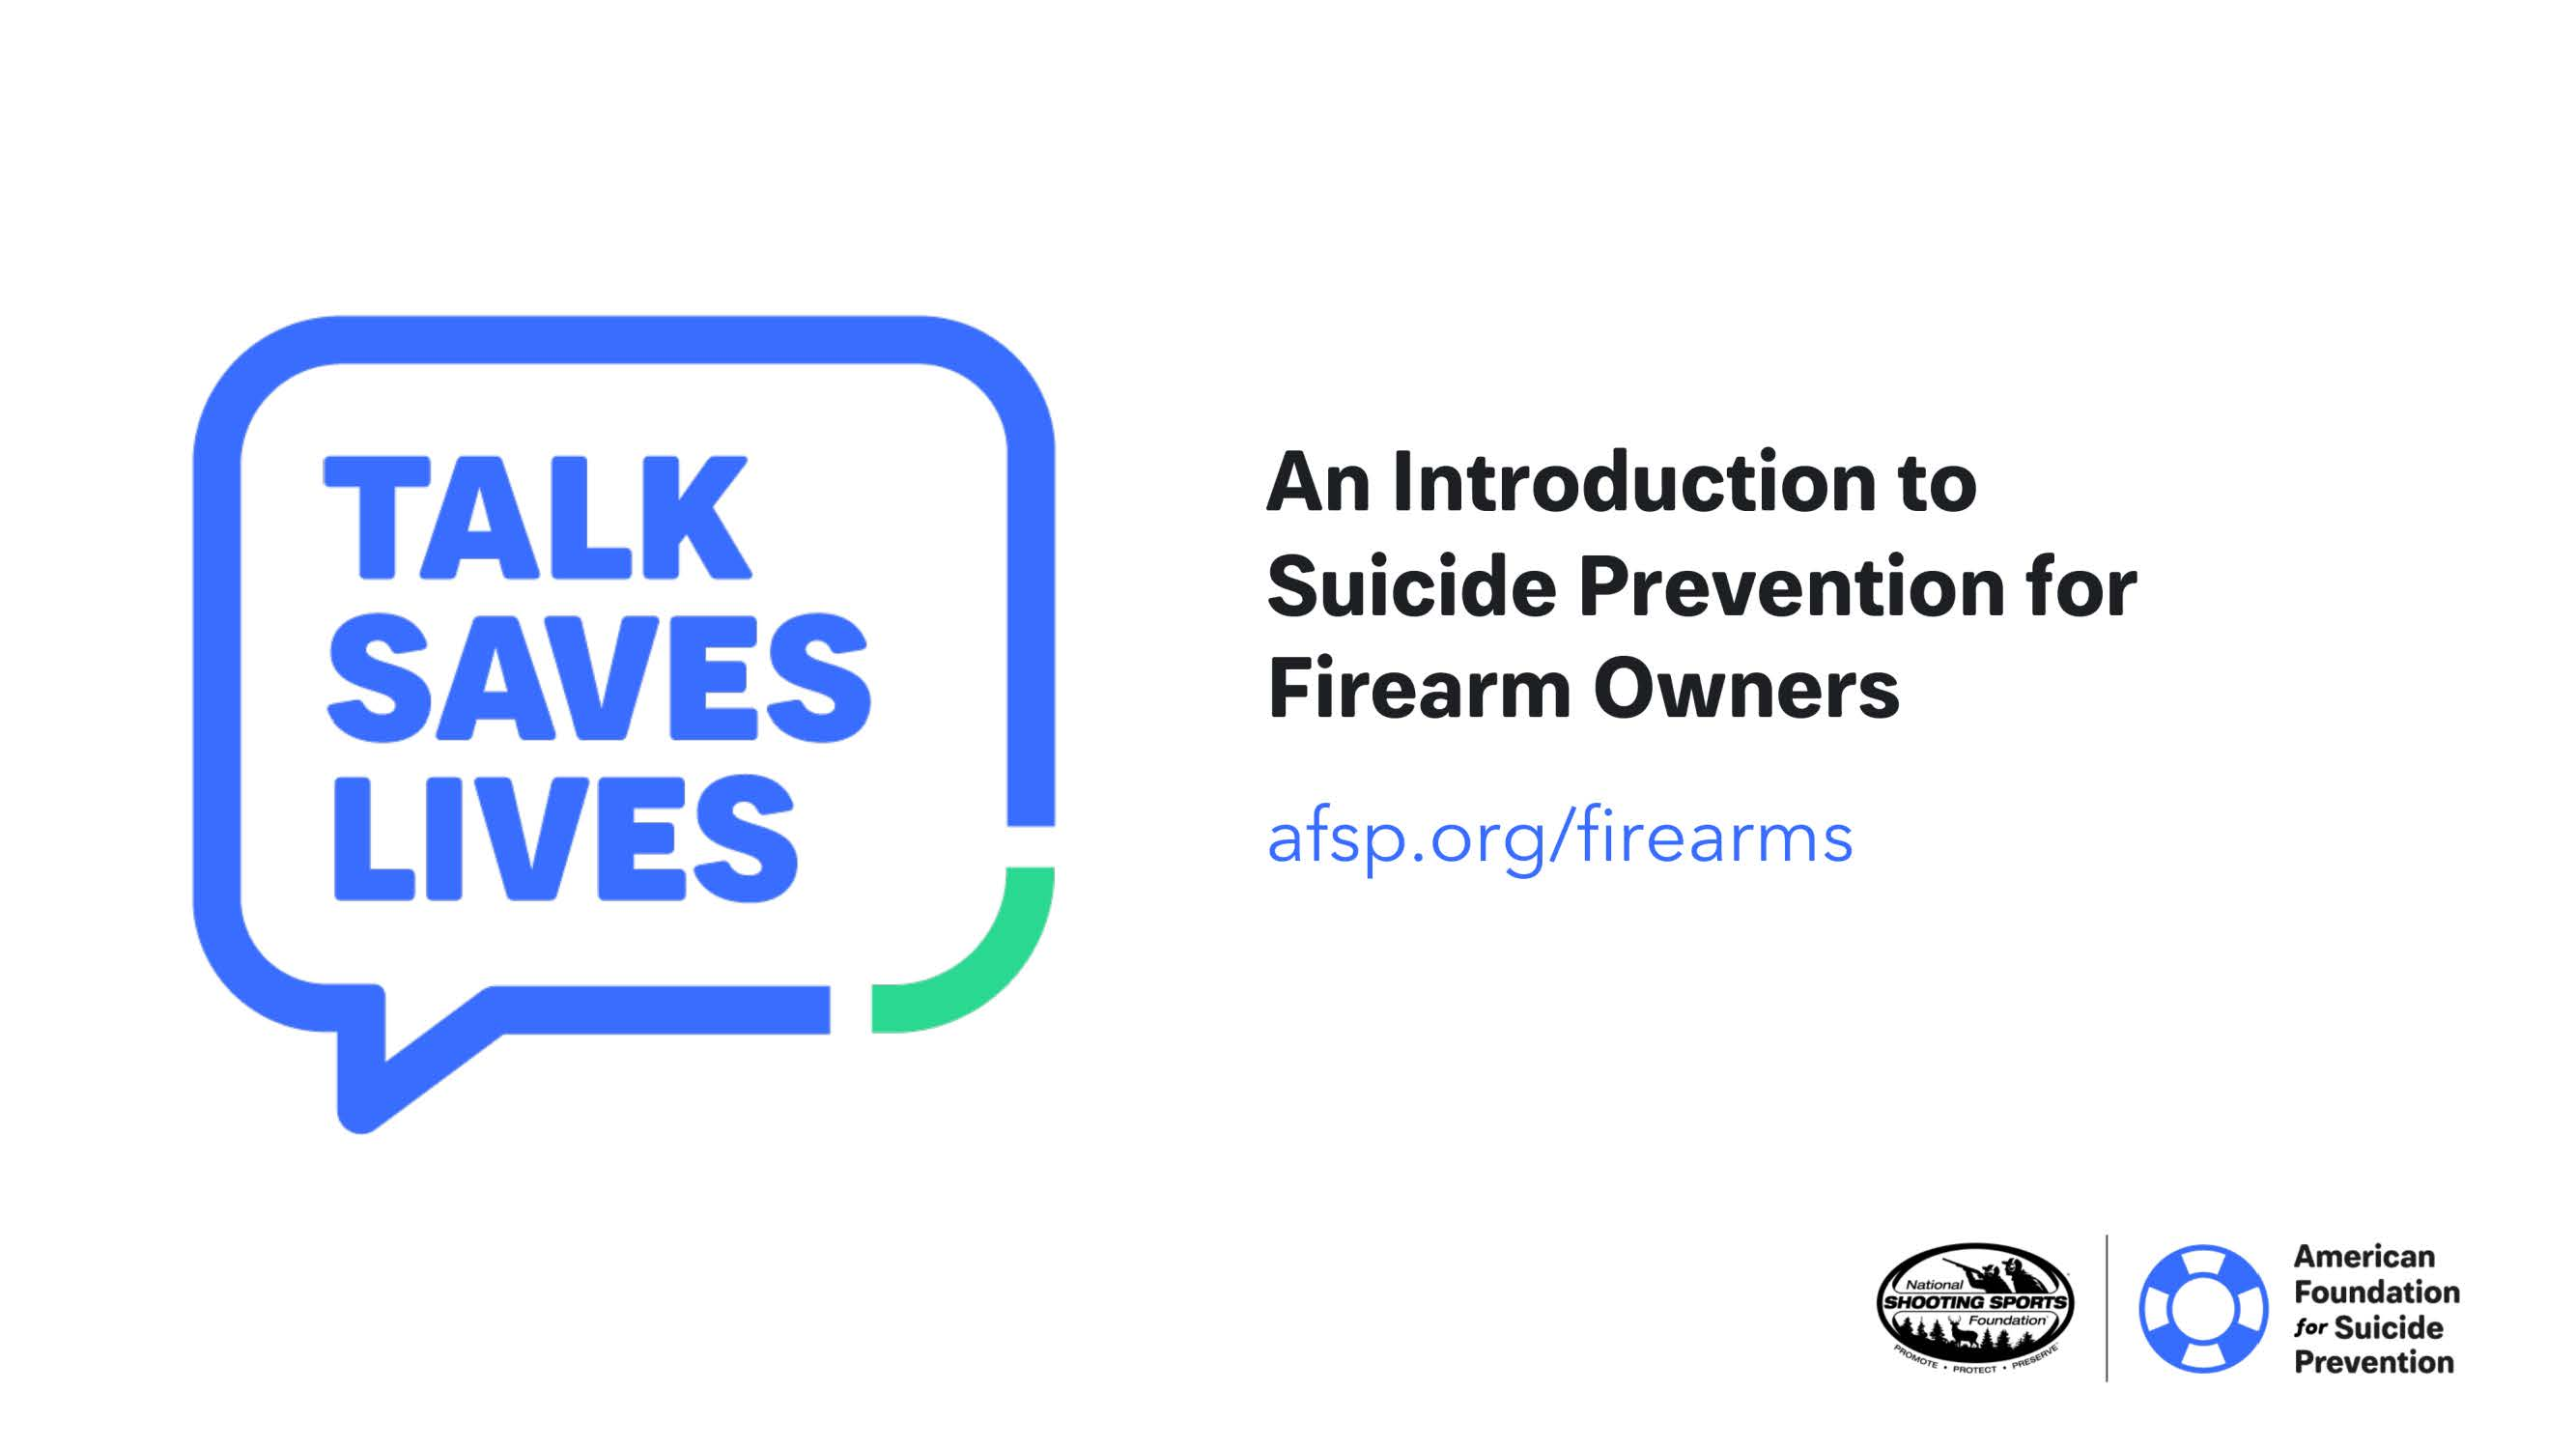 Talk Saves Lives: An Introduction to Suicide Prevention for Firearms Owners